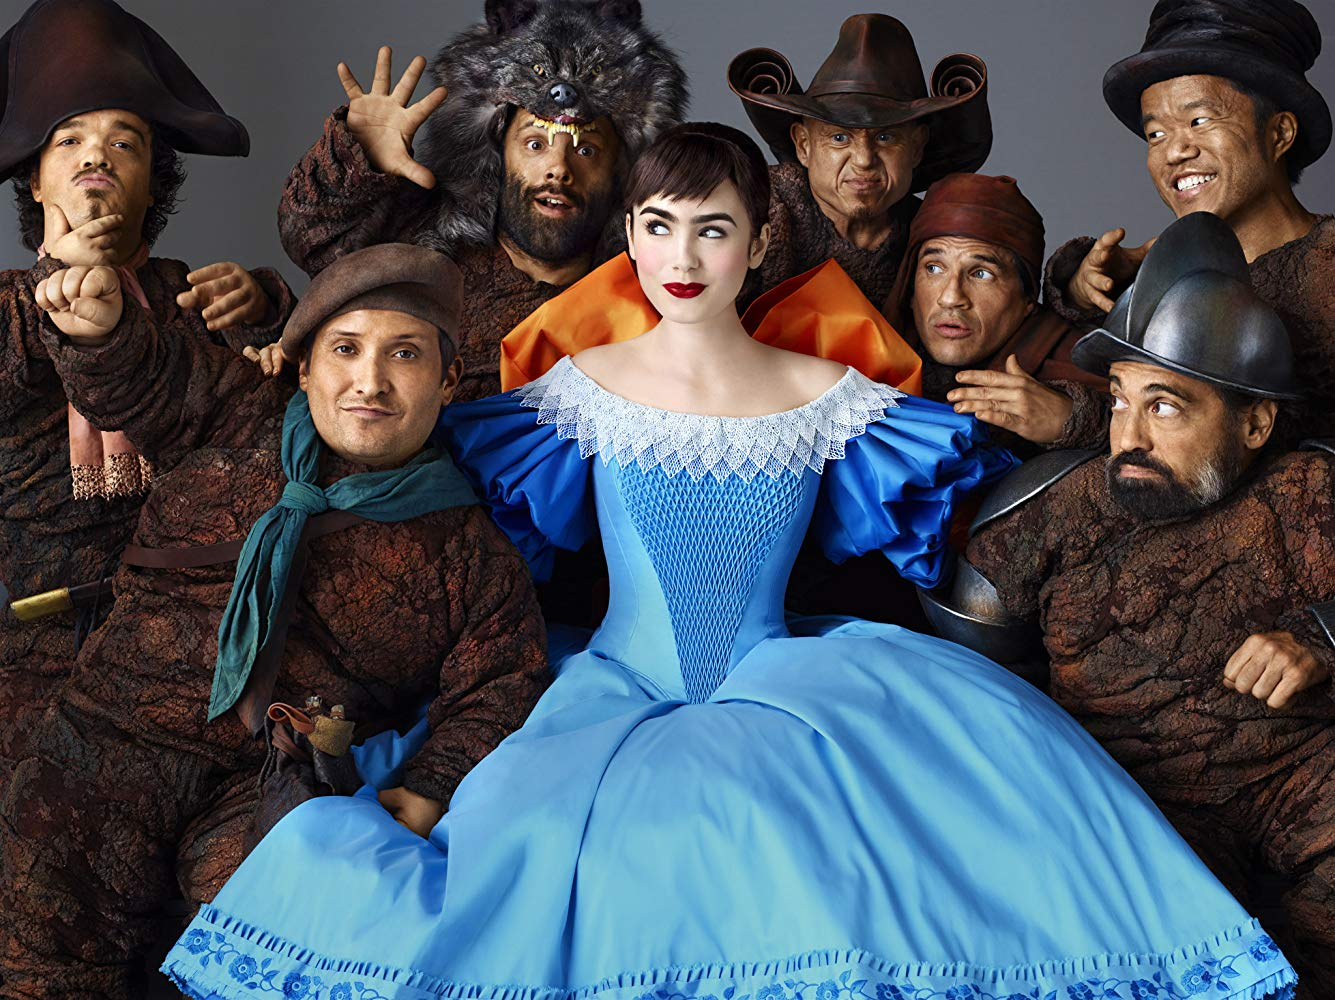 Snow White (Lily Collins) and the seven dwarfs in Mirror Mirror (2012)